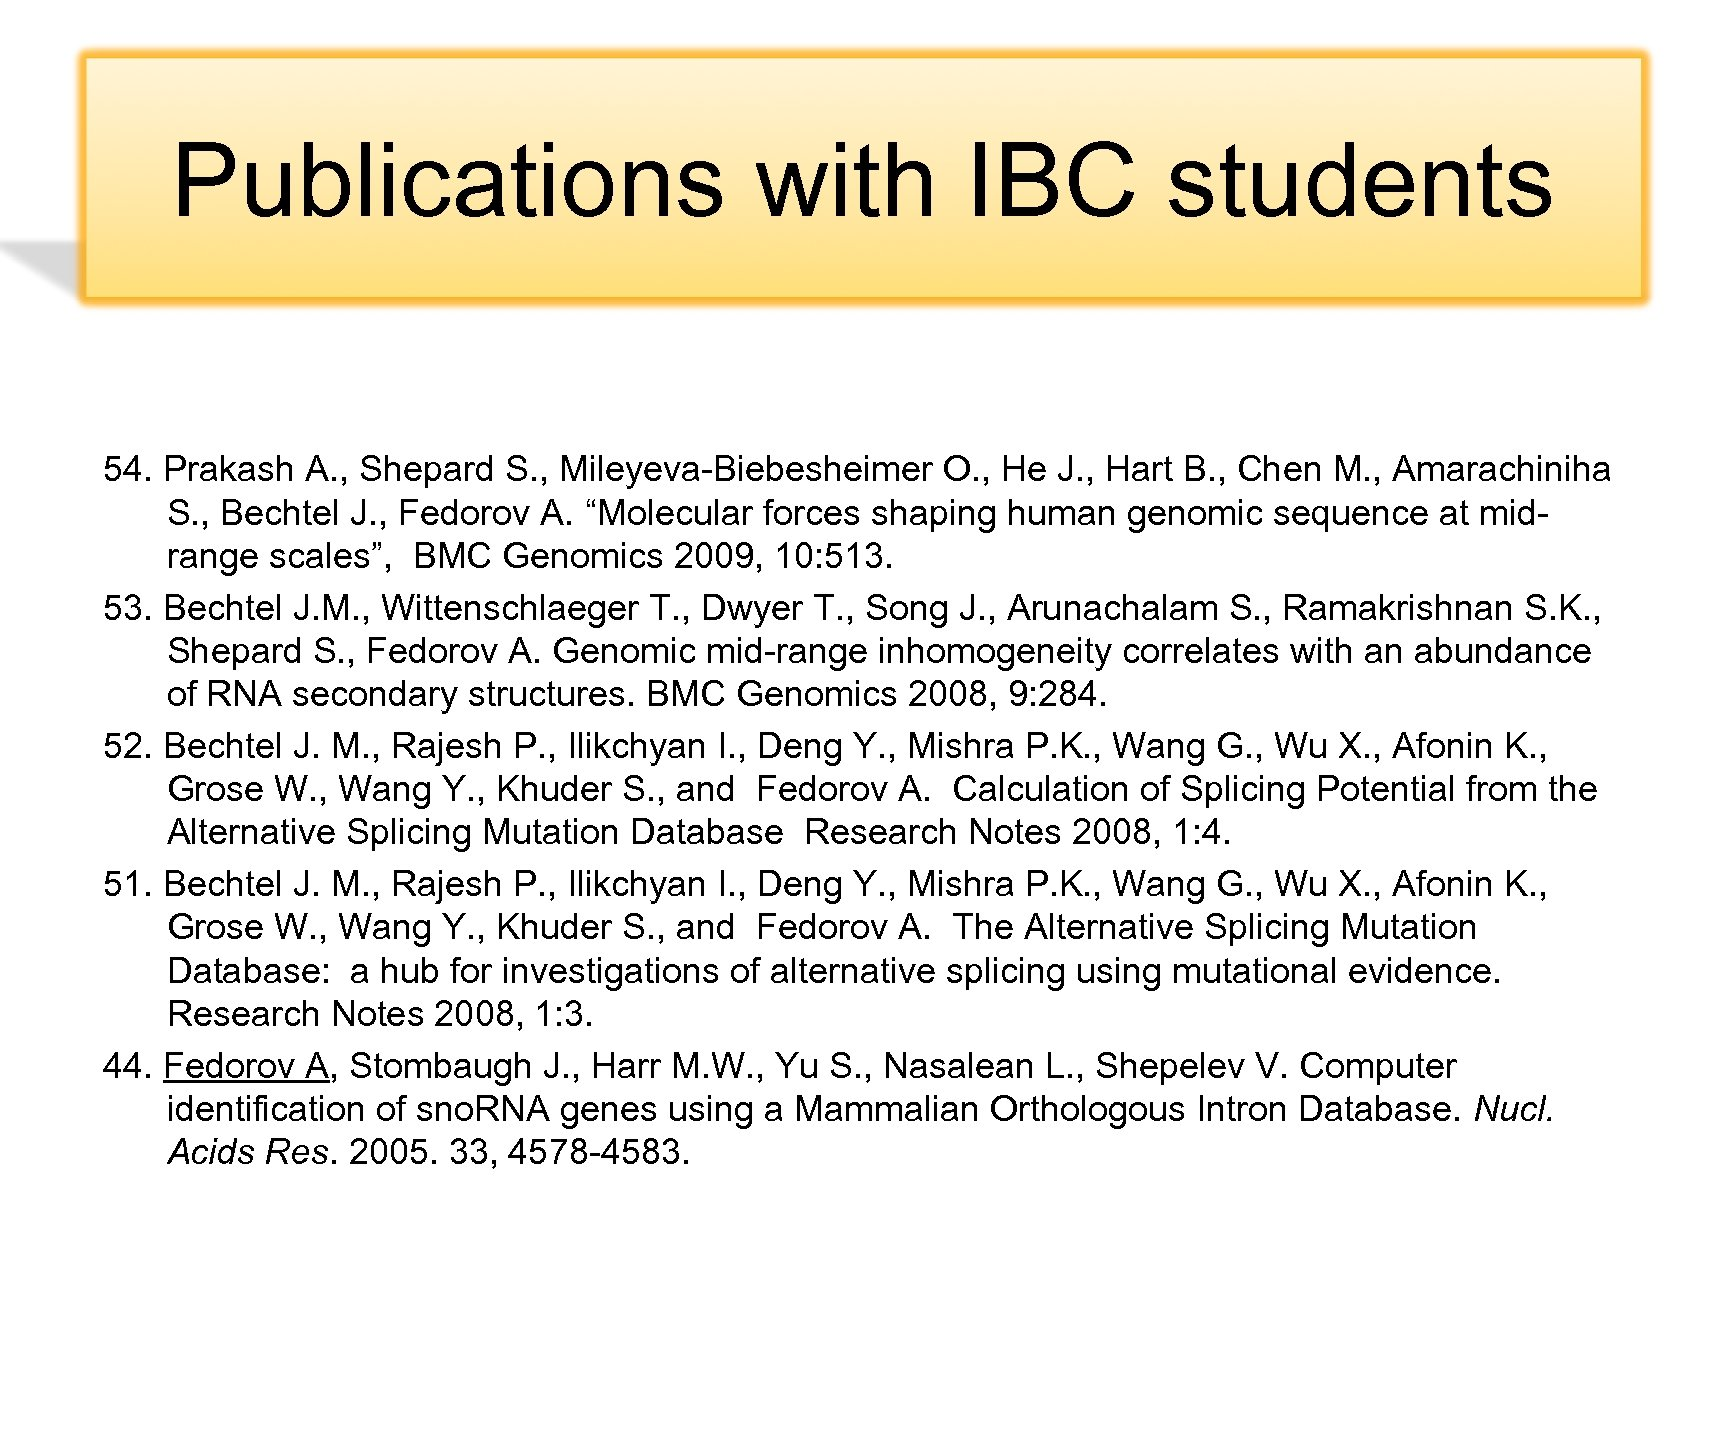 Publications with IBC students 54. Prakash A. , Shepard S. , Mileyeva-Biebesheimer O. ,